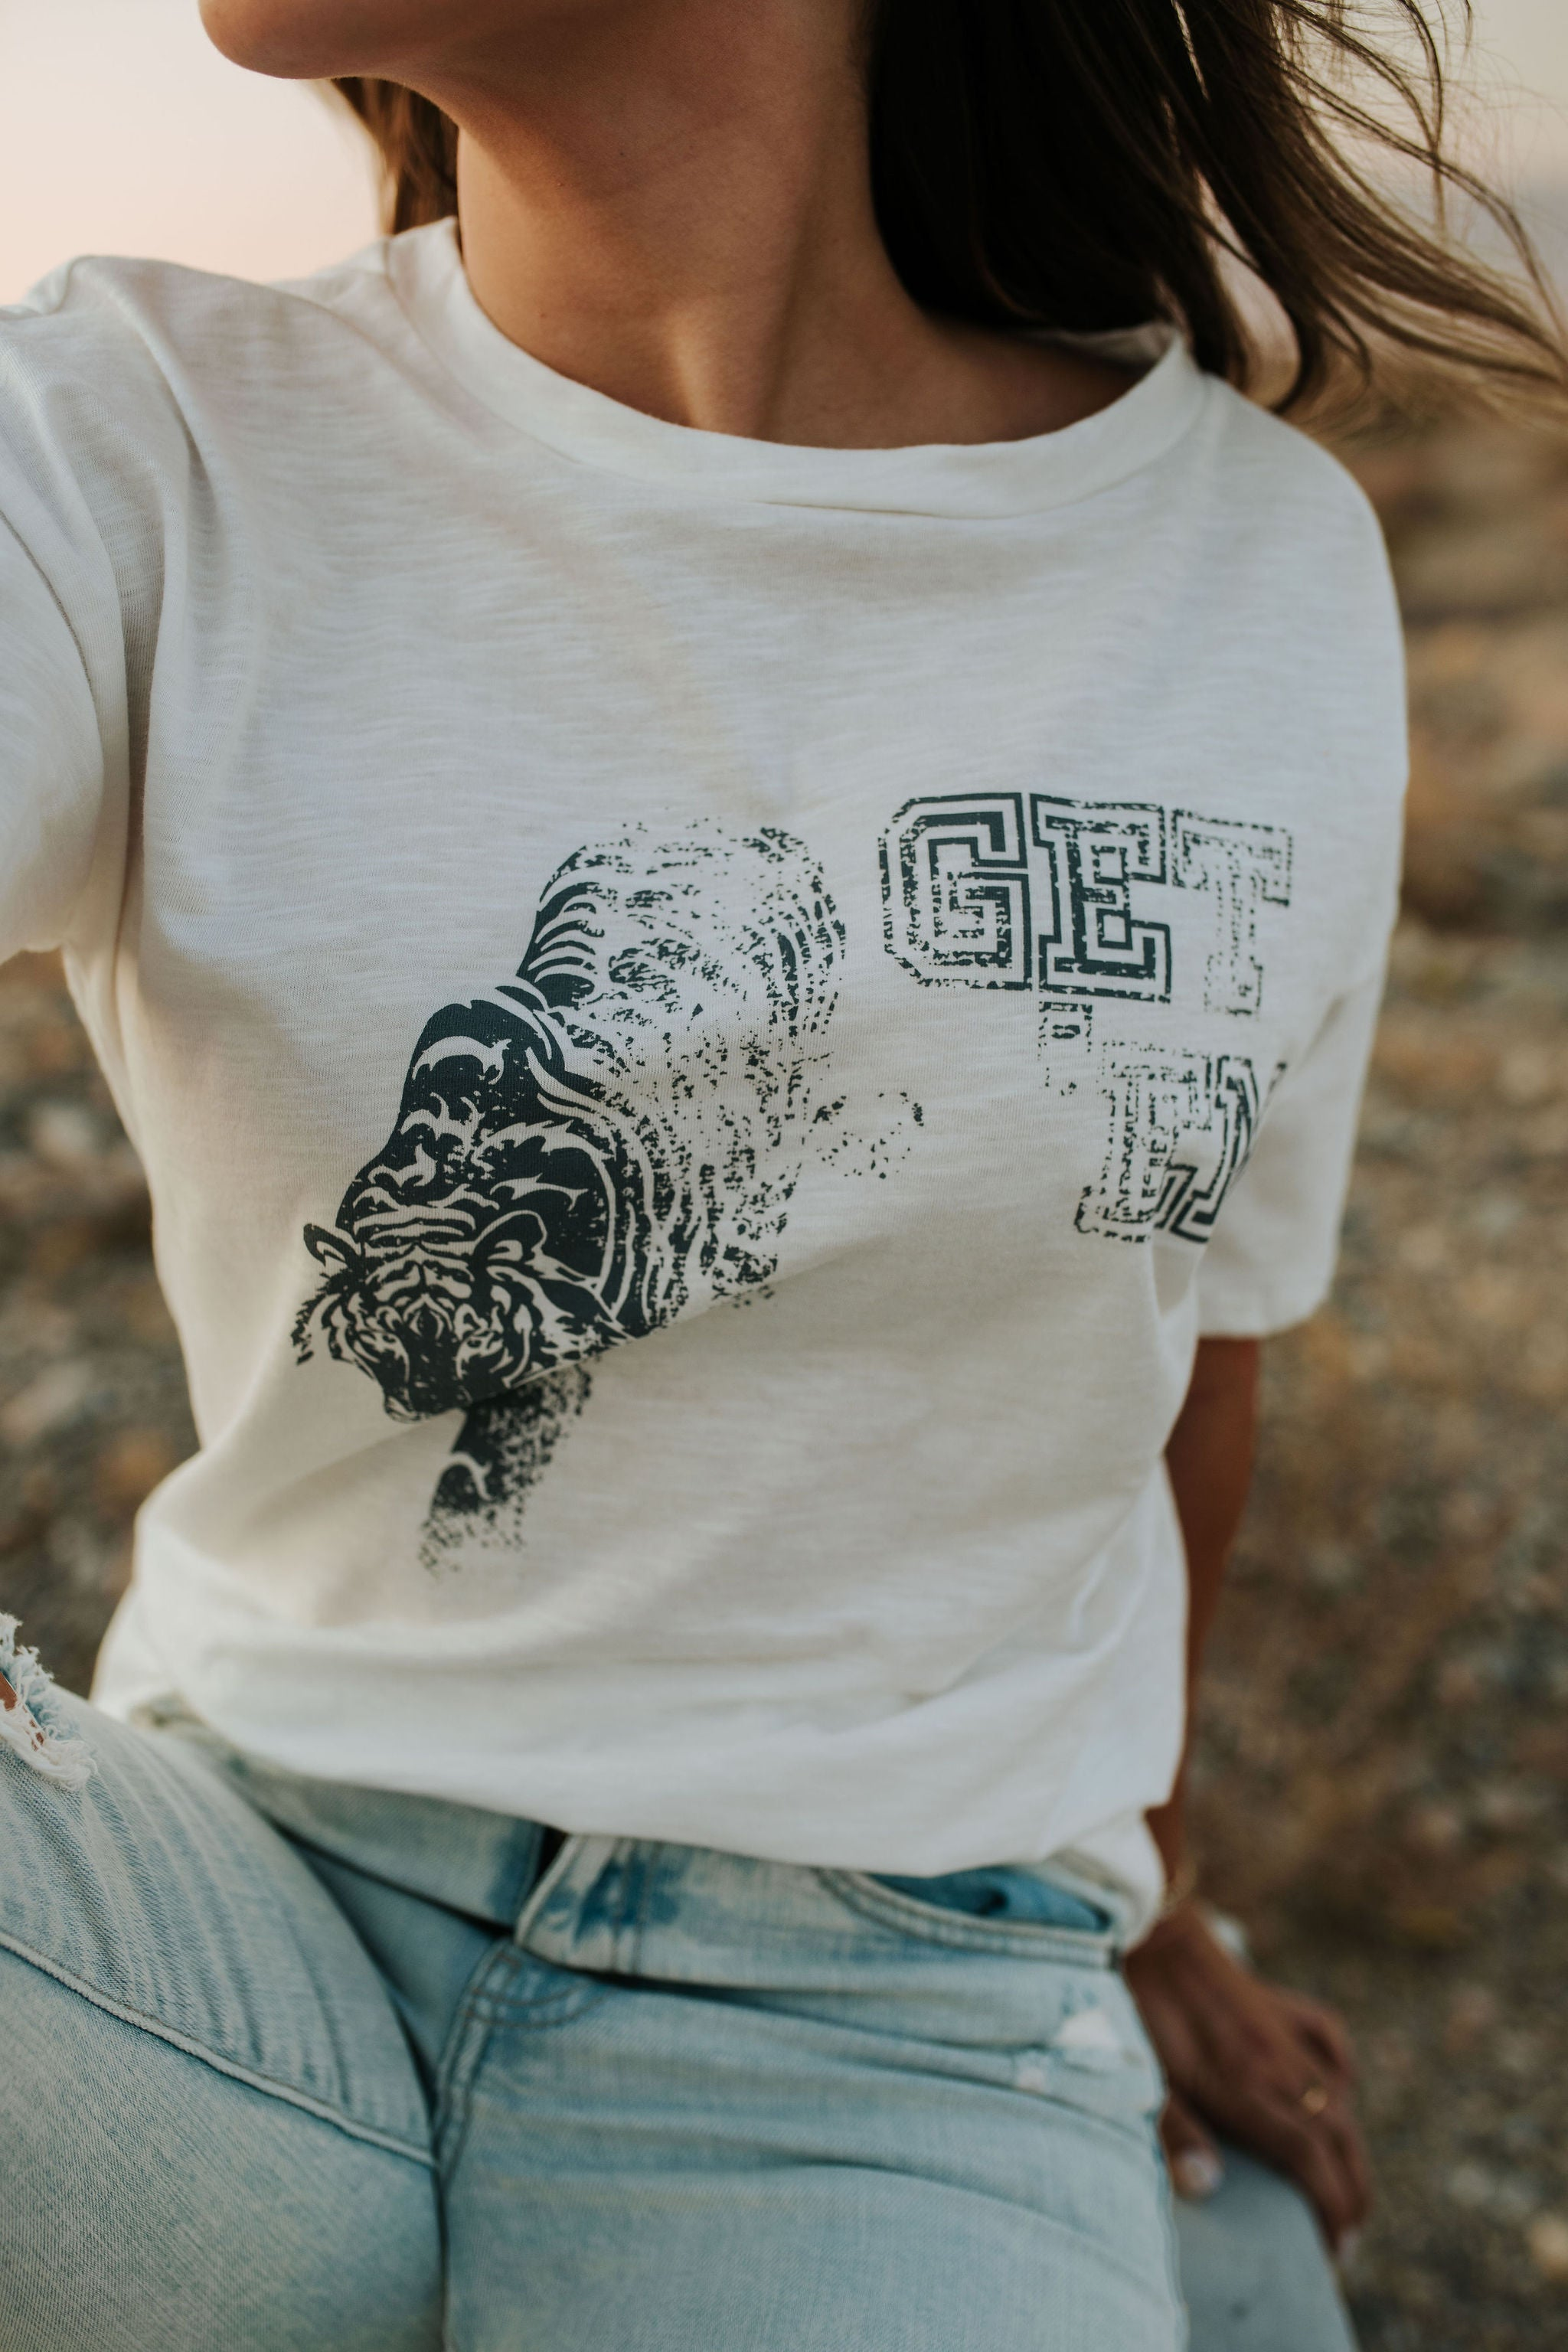 THE GET EM' TIGER GRAPHIC TEE